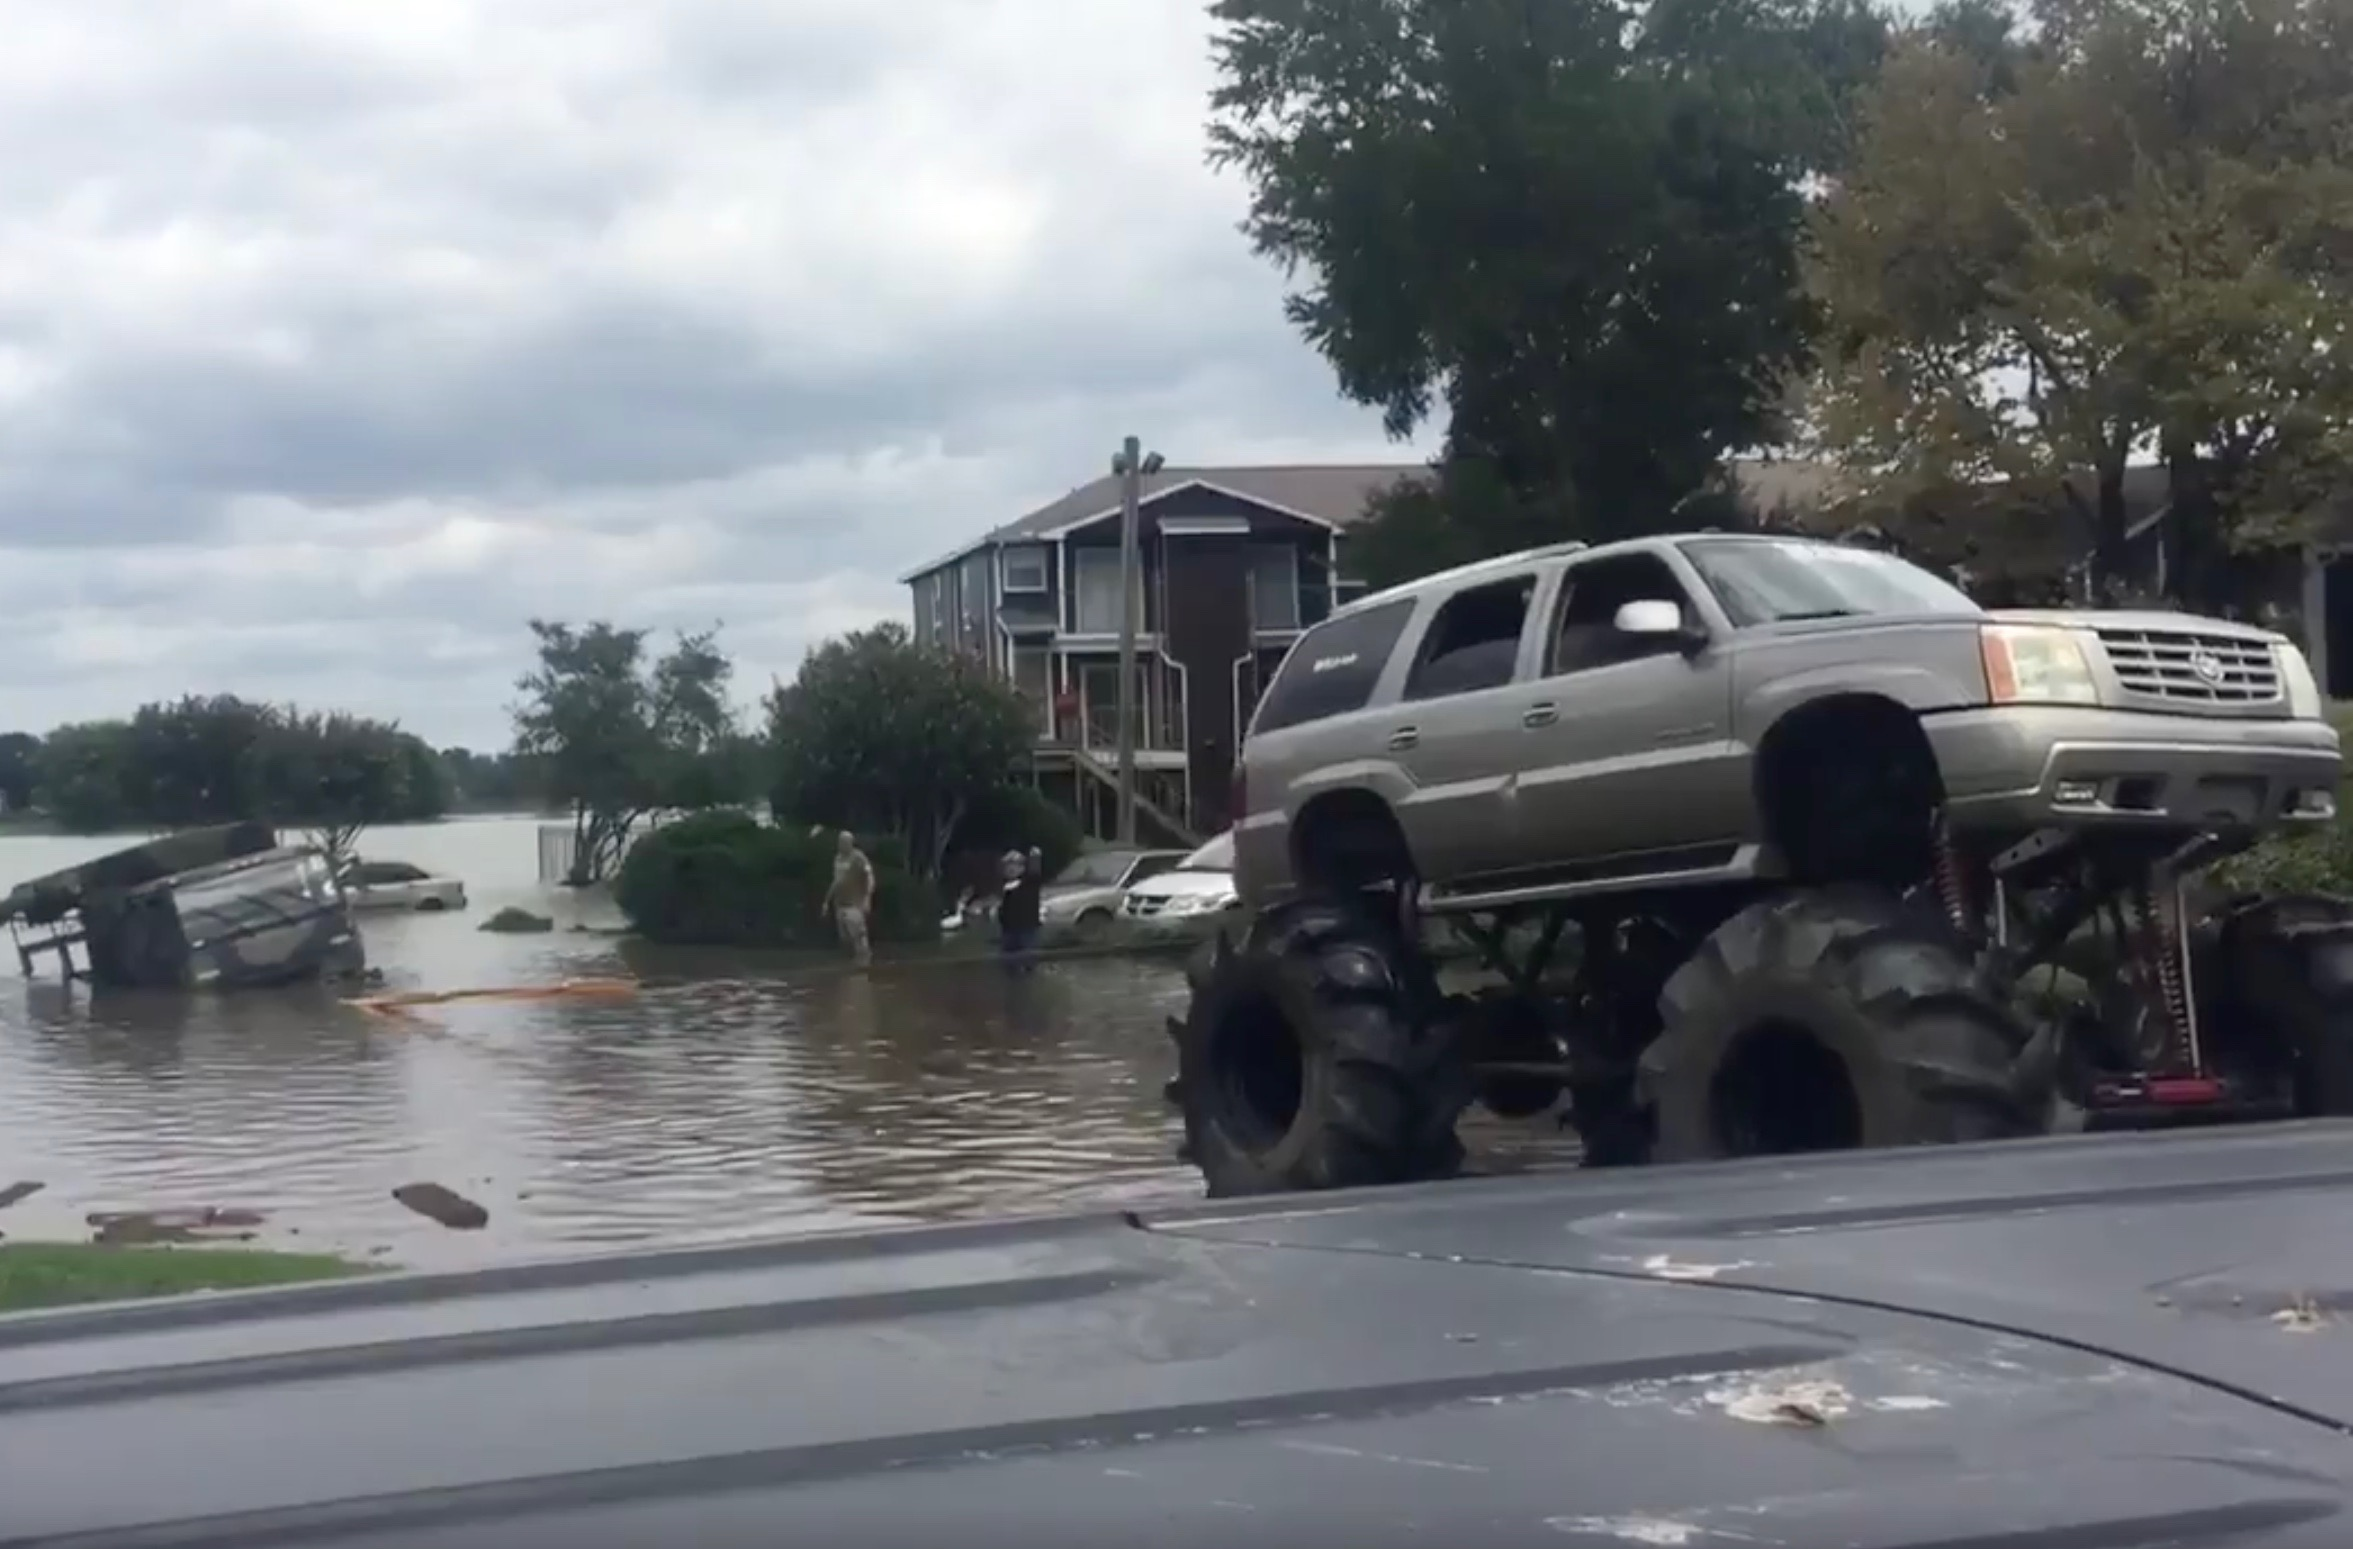 Monster trucks rescue stranded army truck in Houston floods